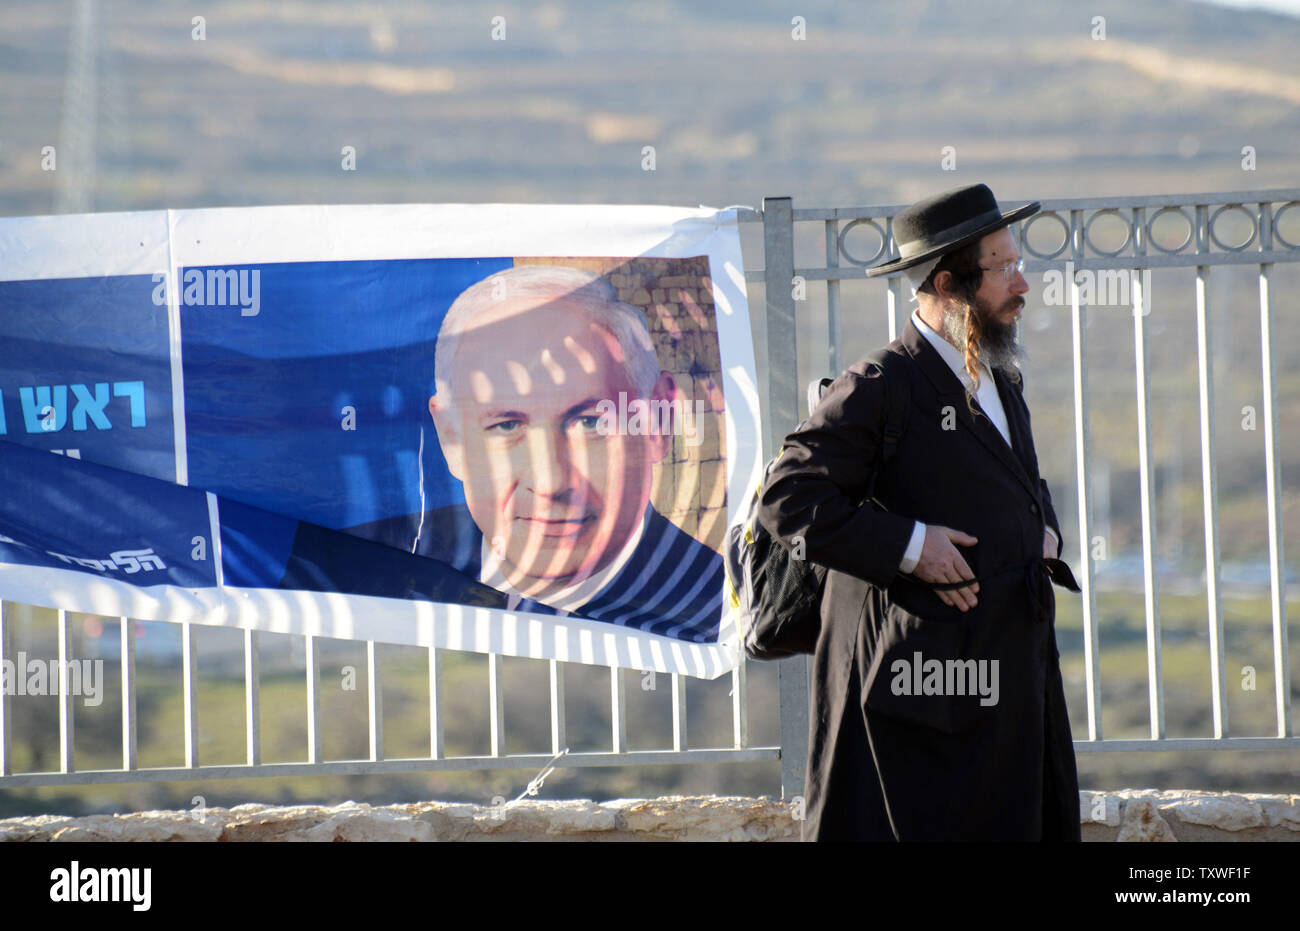 An Ultra-Orthodox Jew stands beside a campaign poster of Israeli Prime Minister and Likud leader Benjamin Netanyahu in the Efrat Settlement in the West Bank, January 20, 2013. Israelis head to vote on Tuesday, January 22, in the general election that  polls predict Netanyahu's Likud-Yisrael Beiteinu ticket to take 32 Knesset seats. UPI/Debbie Hill. - Stock Image